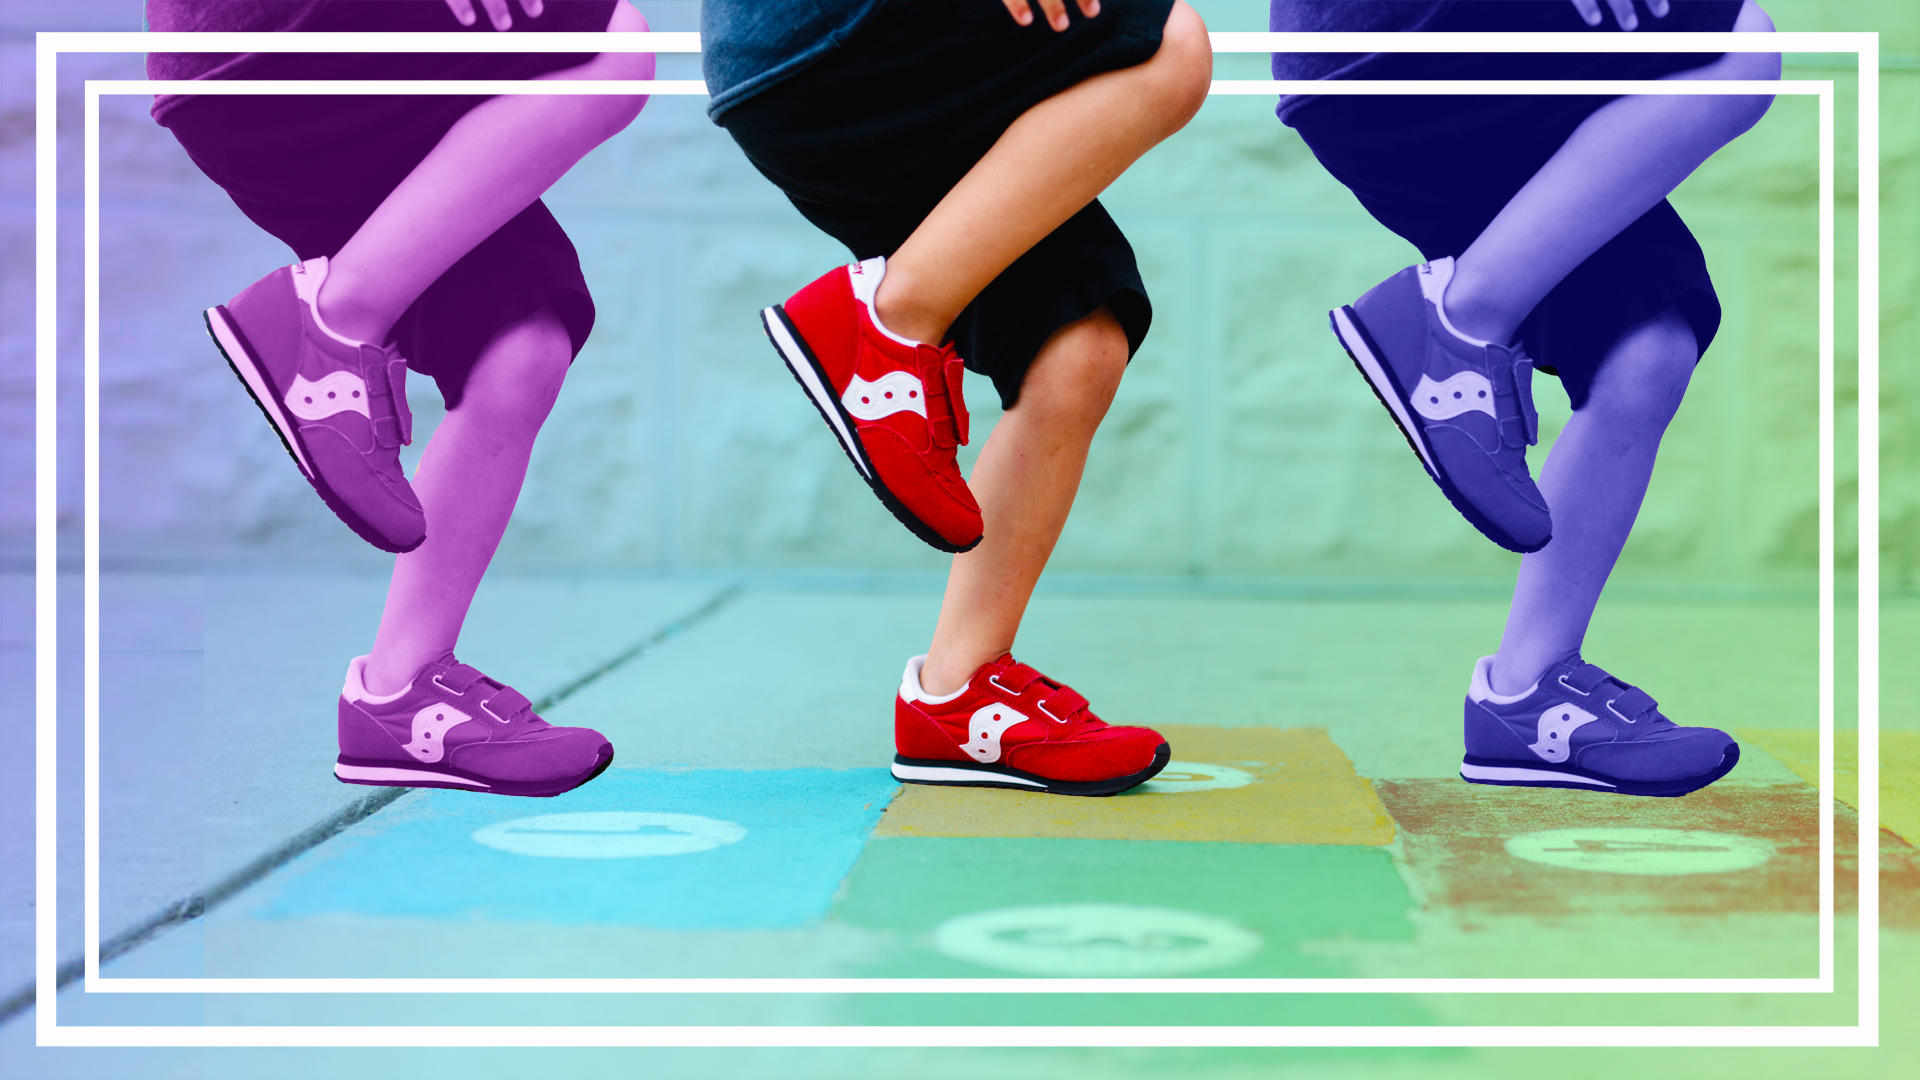 graphic of kids running sneakers